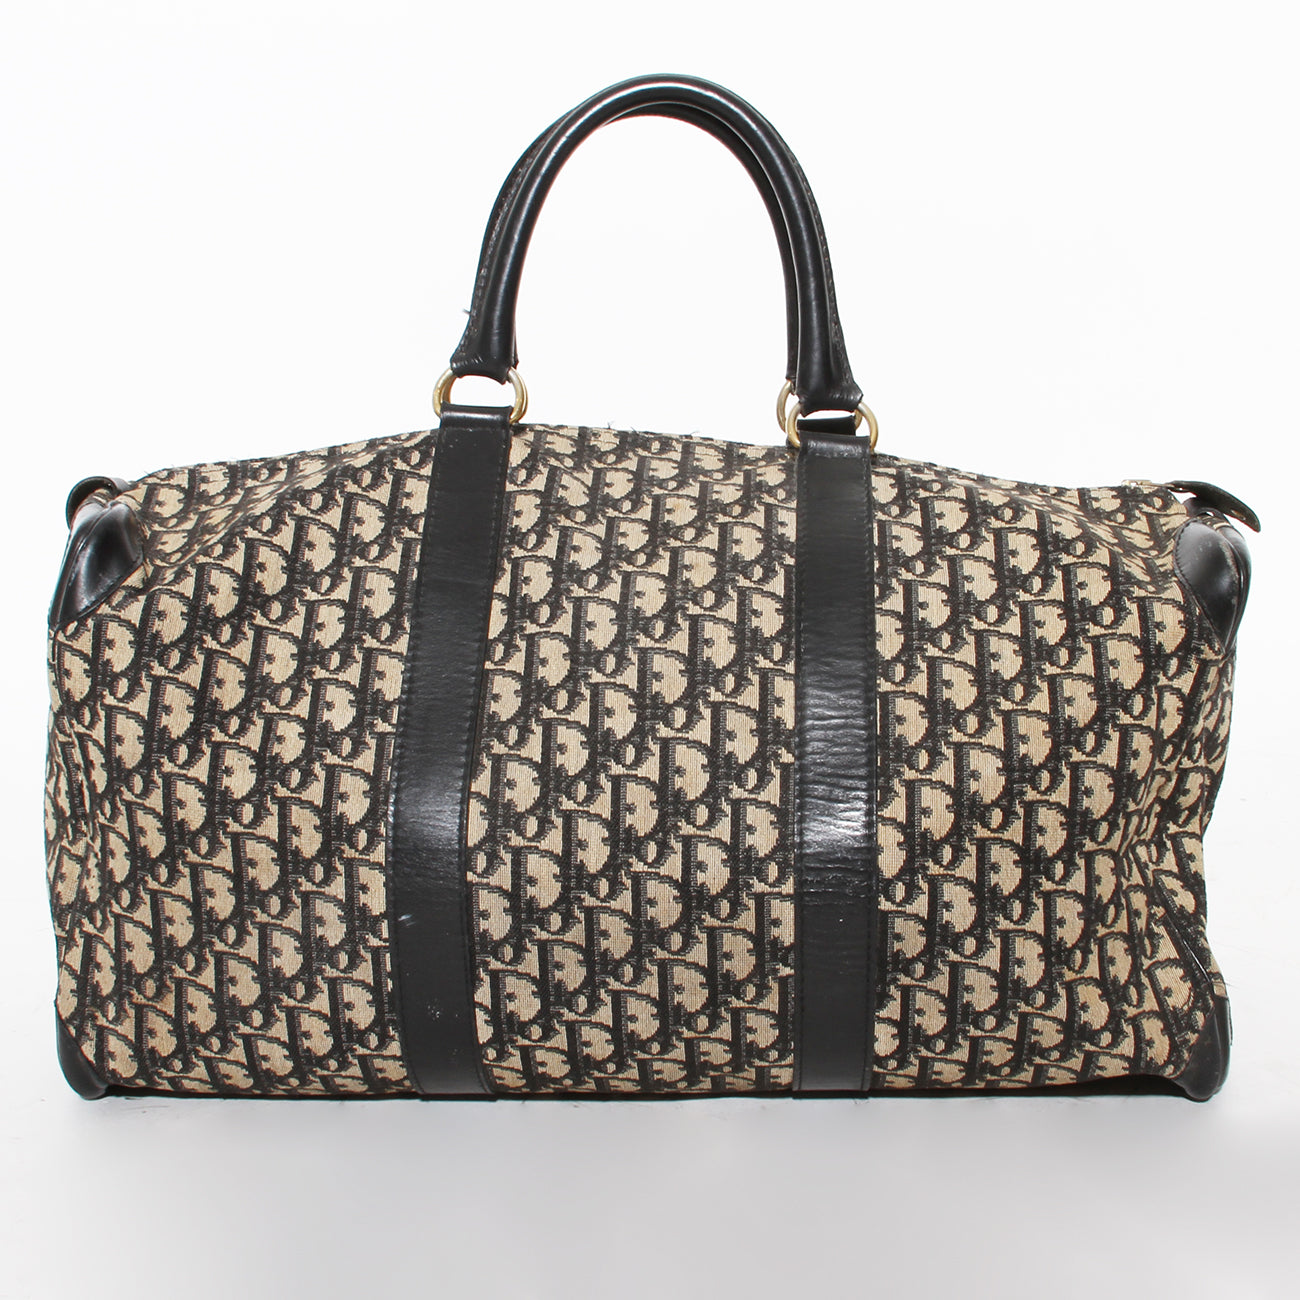 Dior Large Boston Bag